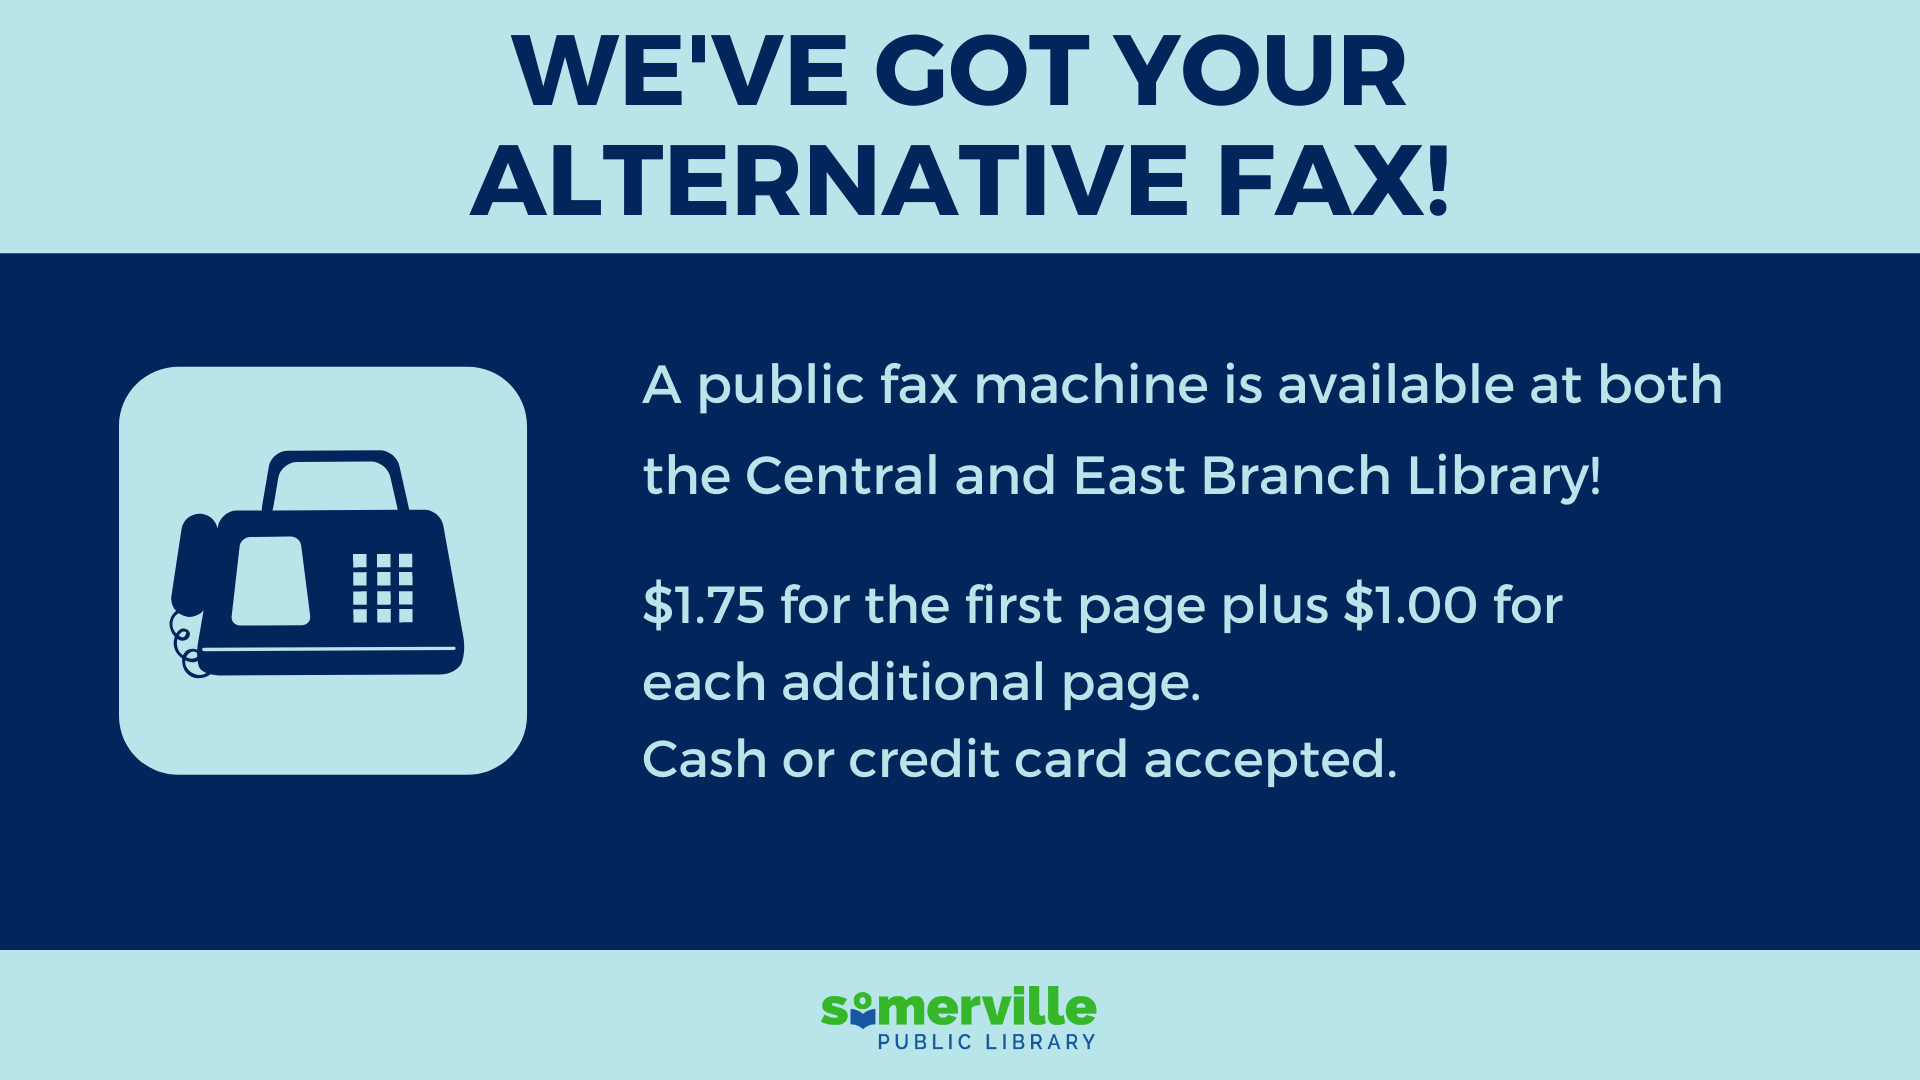 image advertising fax services at the Central Library and the East Branch